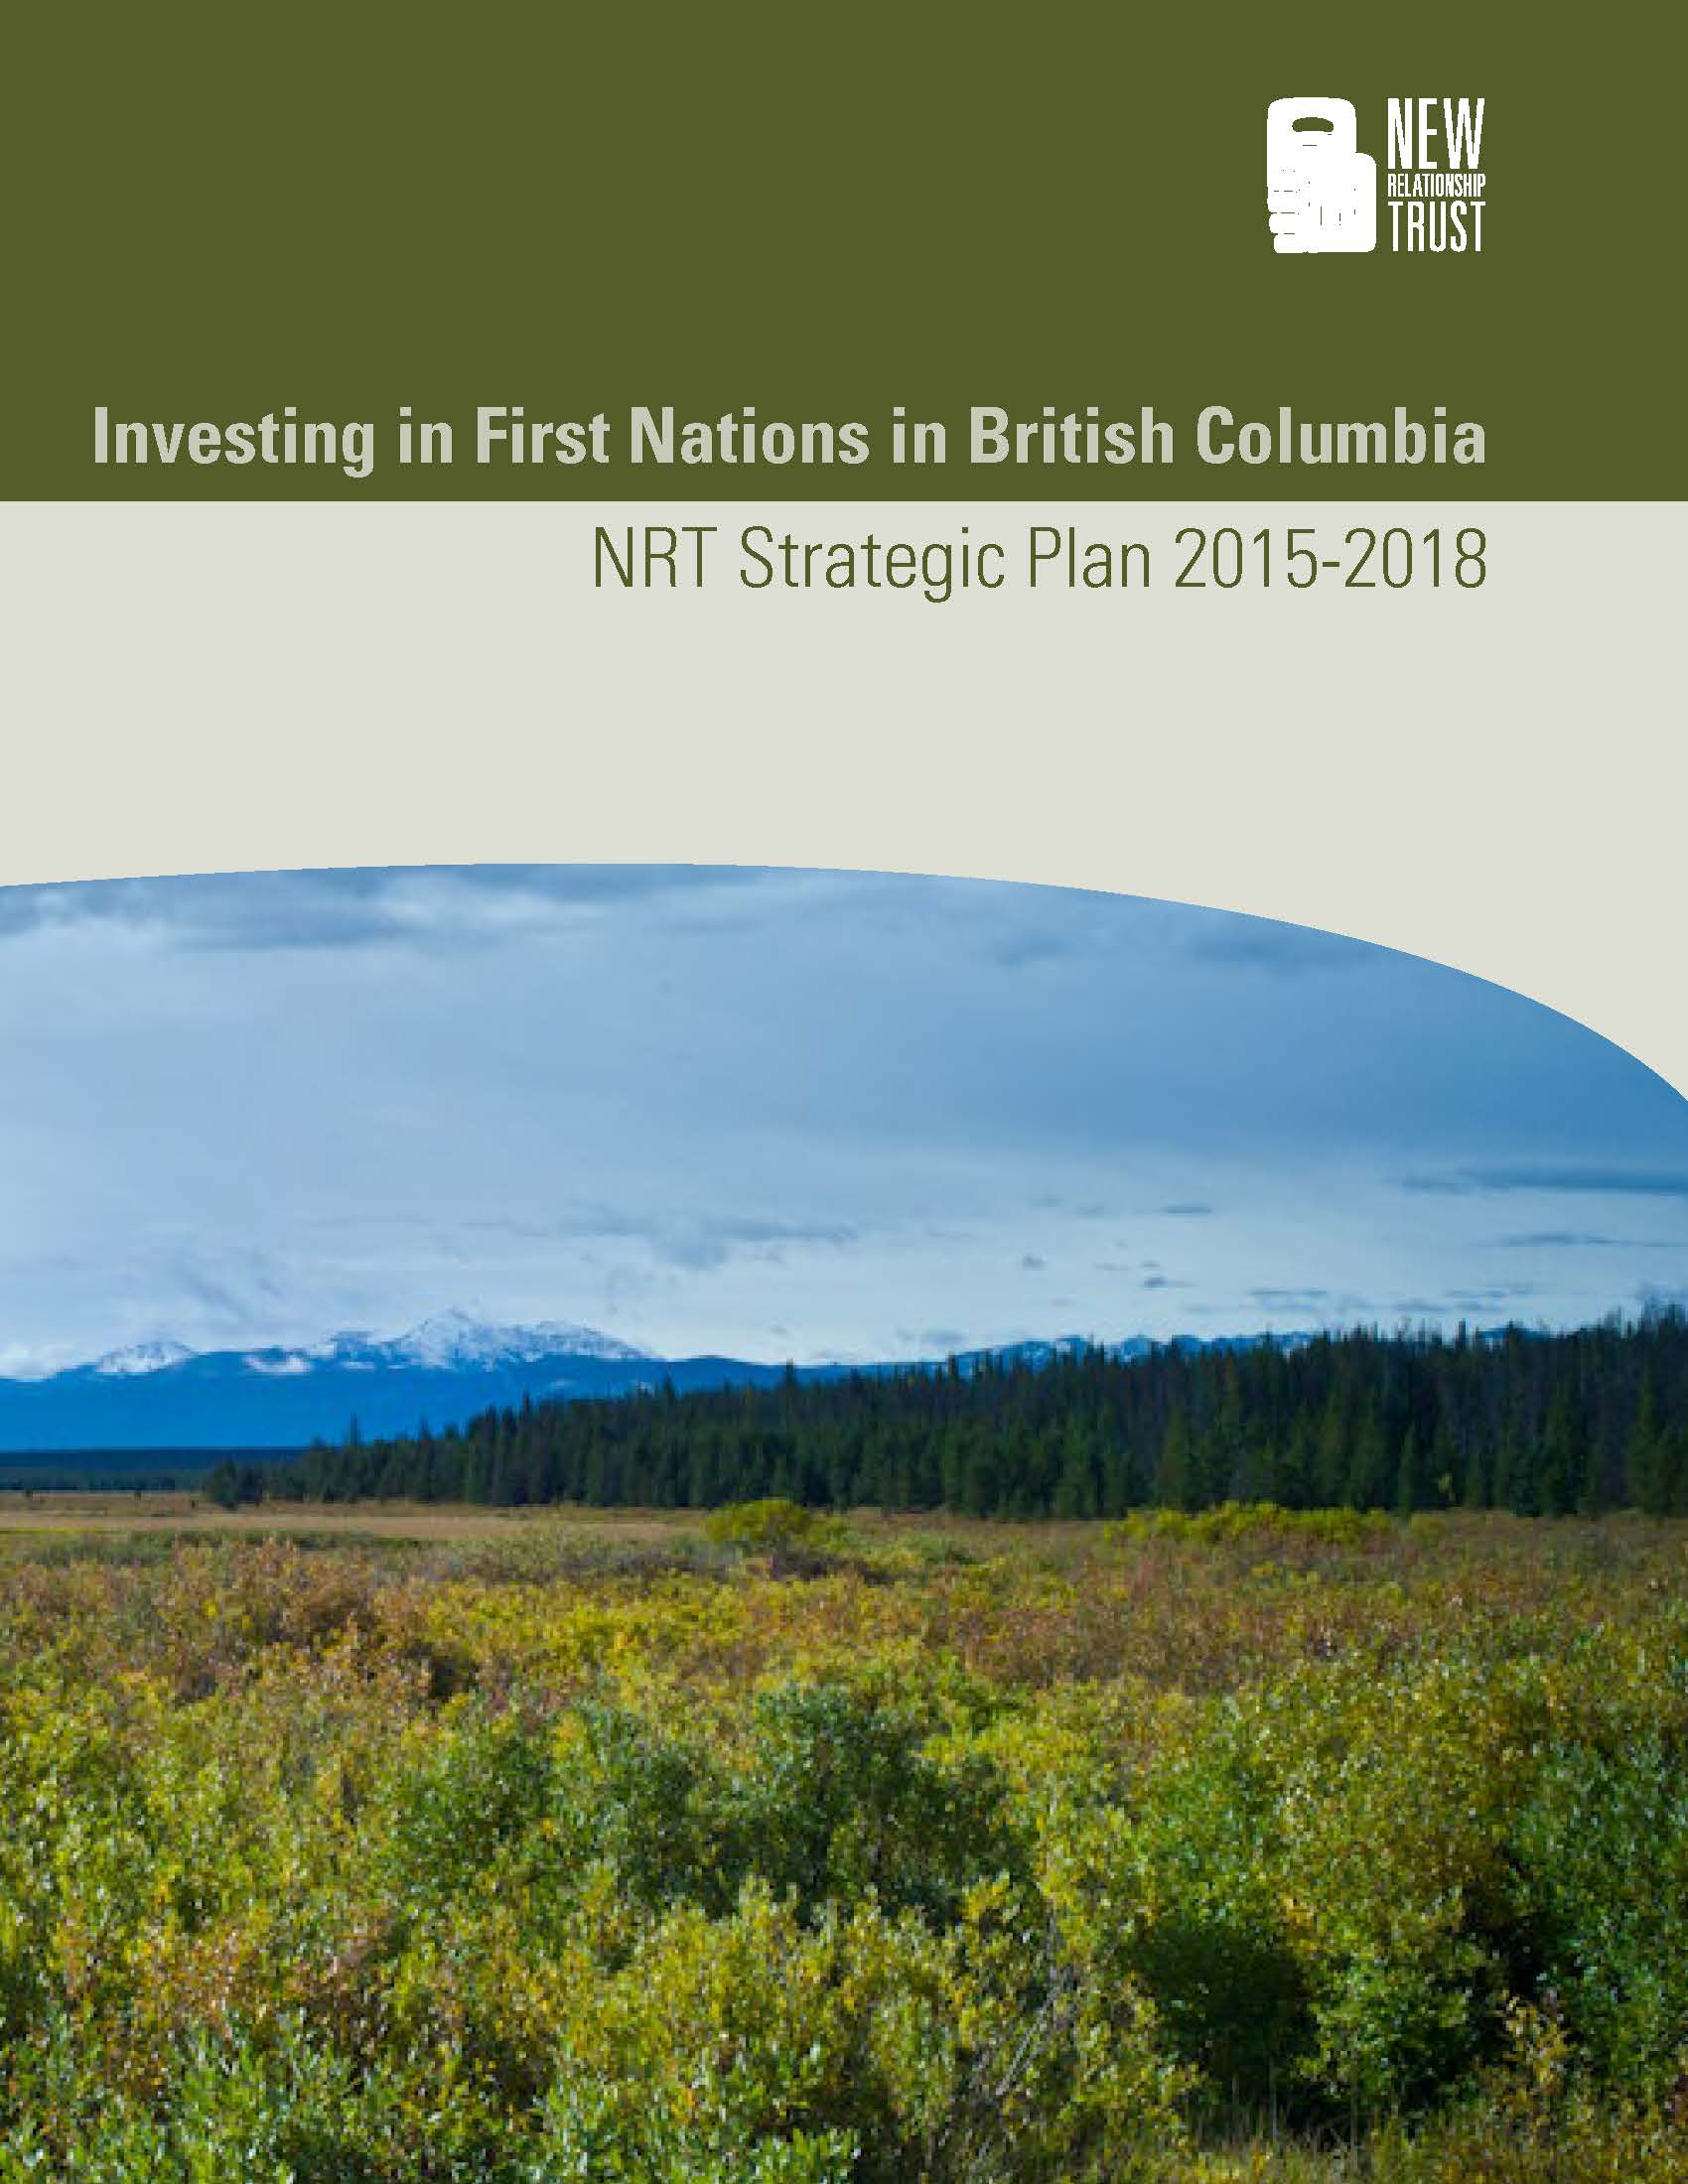 New Relationship Trust First Nations BC